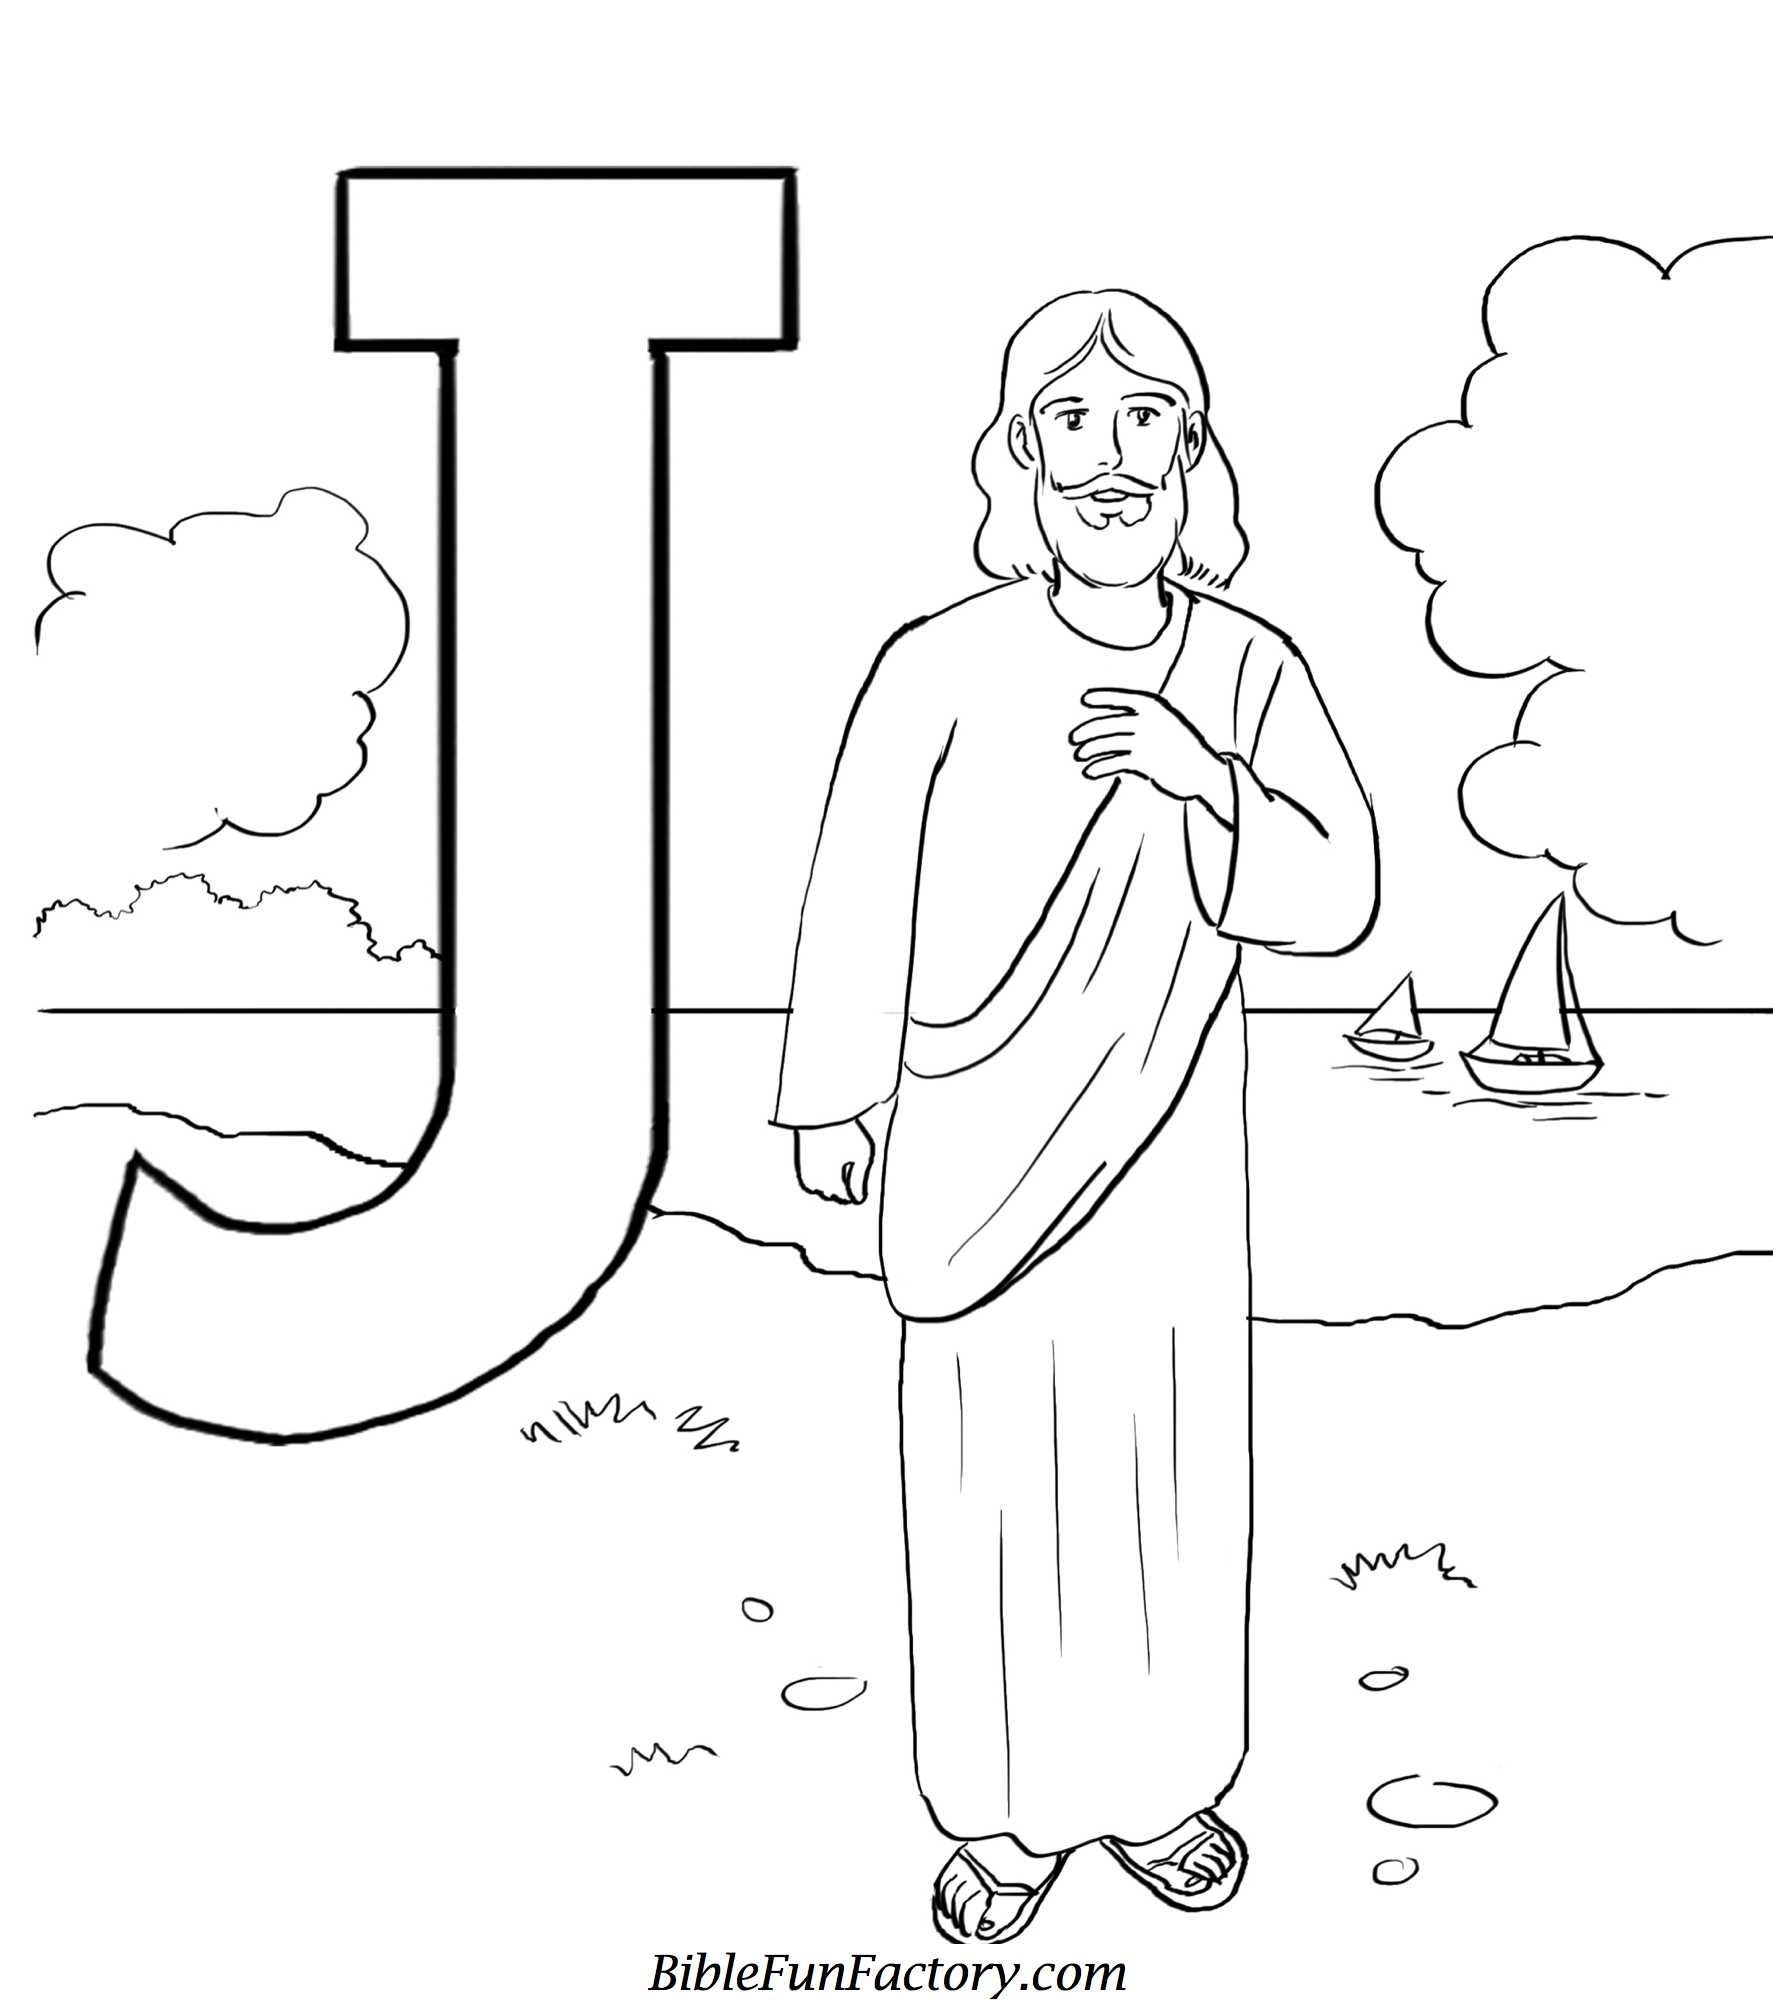 Jesus Christ Coloring Pages is for Jesus Coloring Sheet